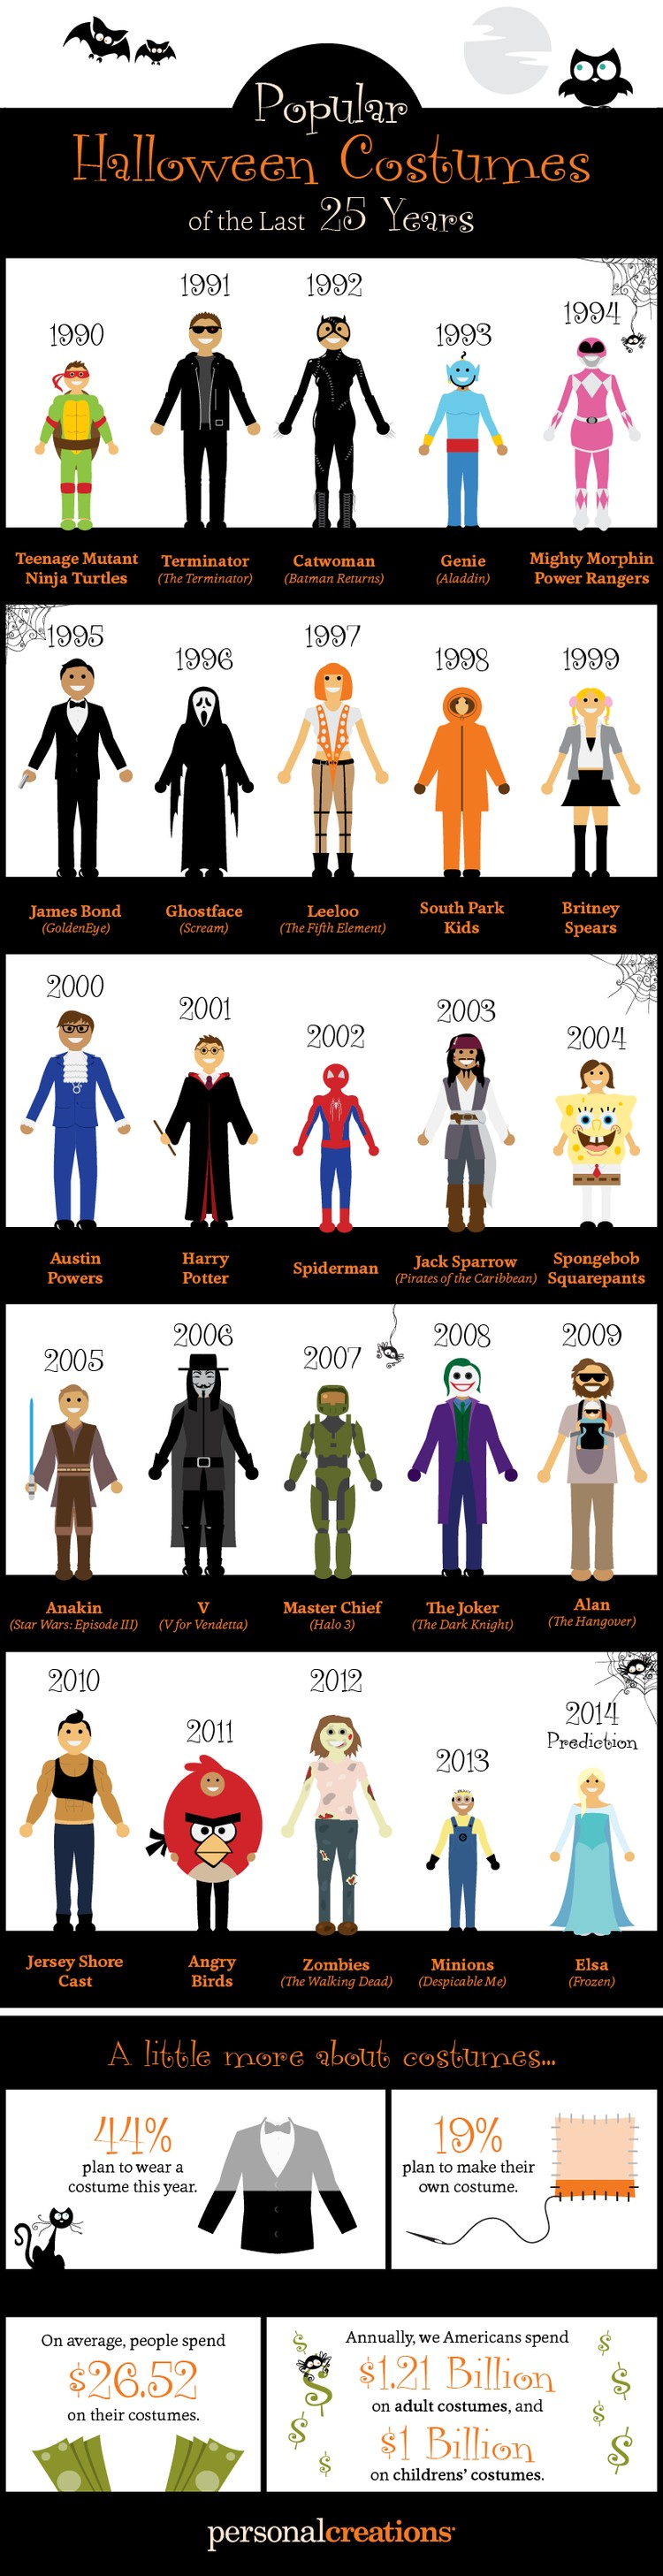 Most Popular Halloween Costumes of the Last 25 Years